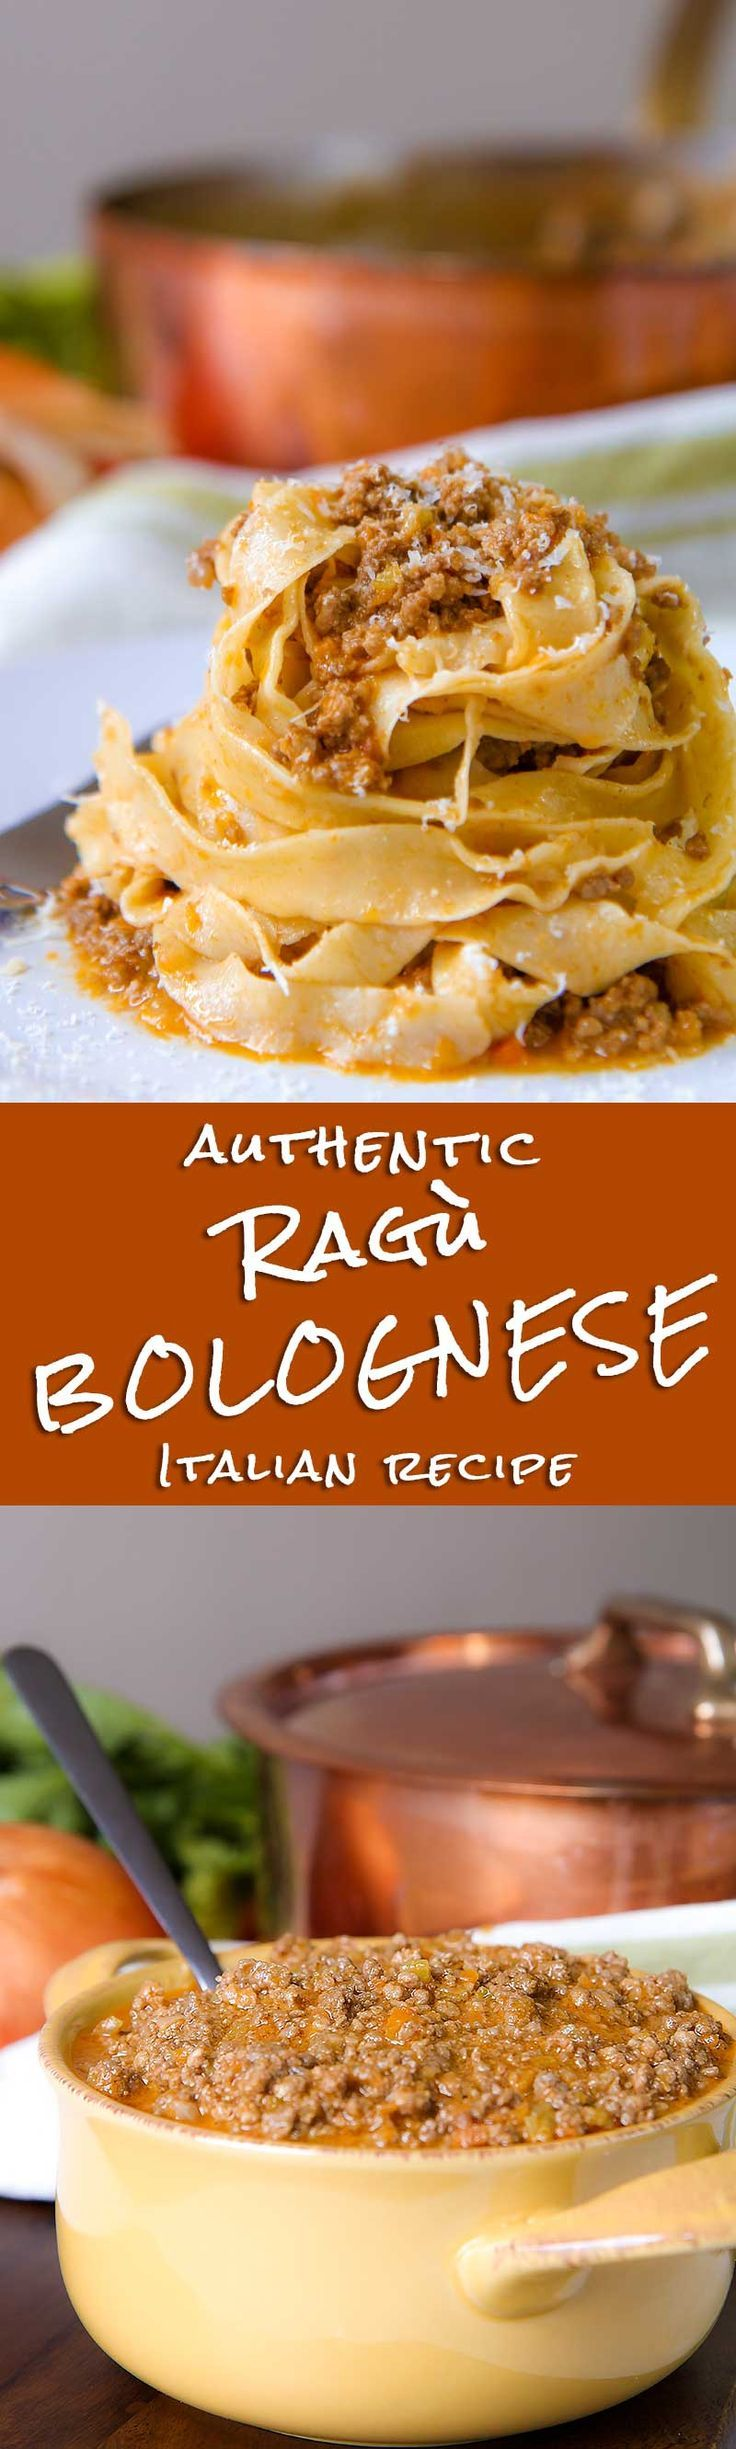 """AUTHENTIC BOLOGNESE SAUCE (Ragù alla Bolognese) - Ragù alla Bolognese is one of the most important recipes of my own city, perhaps the most famous Italian dish in the world. Unfortunately, it is also the most mangling Italian recipe! The preparation of this great recipe is very easy, but needs time, right ingredients and a very good thick-bottomed heavy pot. Take your time and be prepared to taste something different than the ordinary """"Bolognese sauce""""! - dinner recipes pasta lasagna family"""